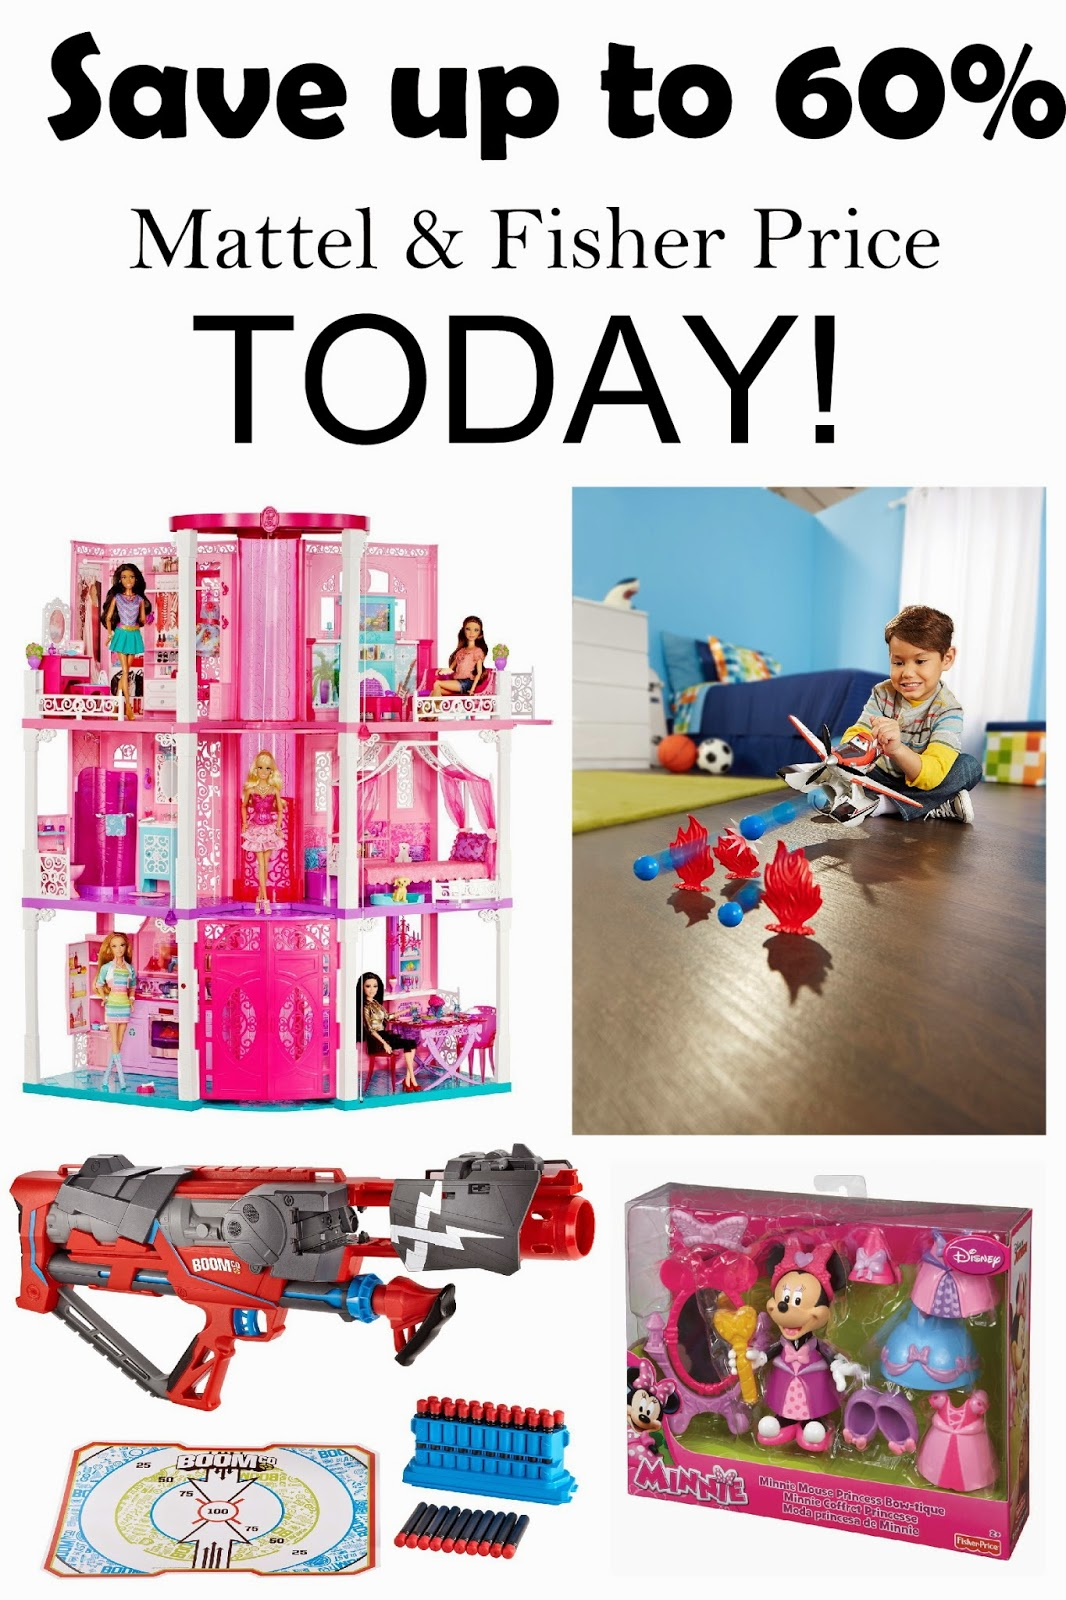 Save up to 60% off Mattel and Fisher Price toys for kids today! This is a great black Friday week deal that will help you get some Christmas shopping for kids toys done.